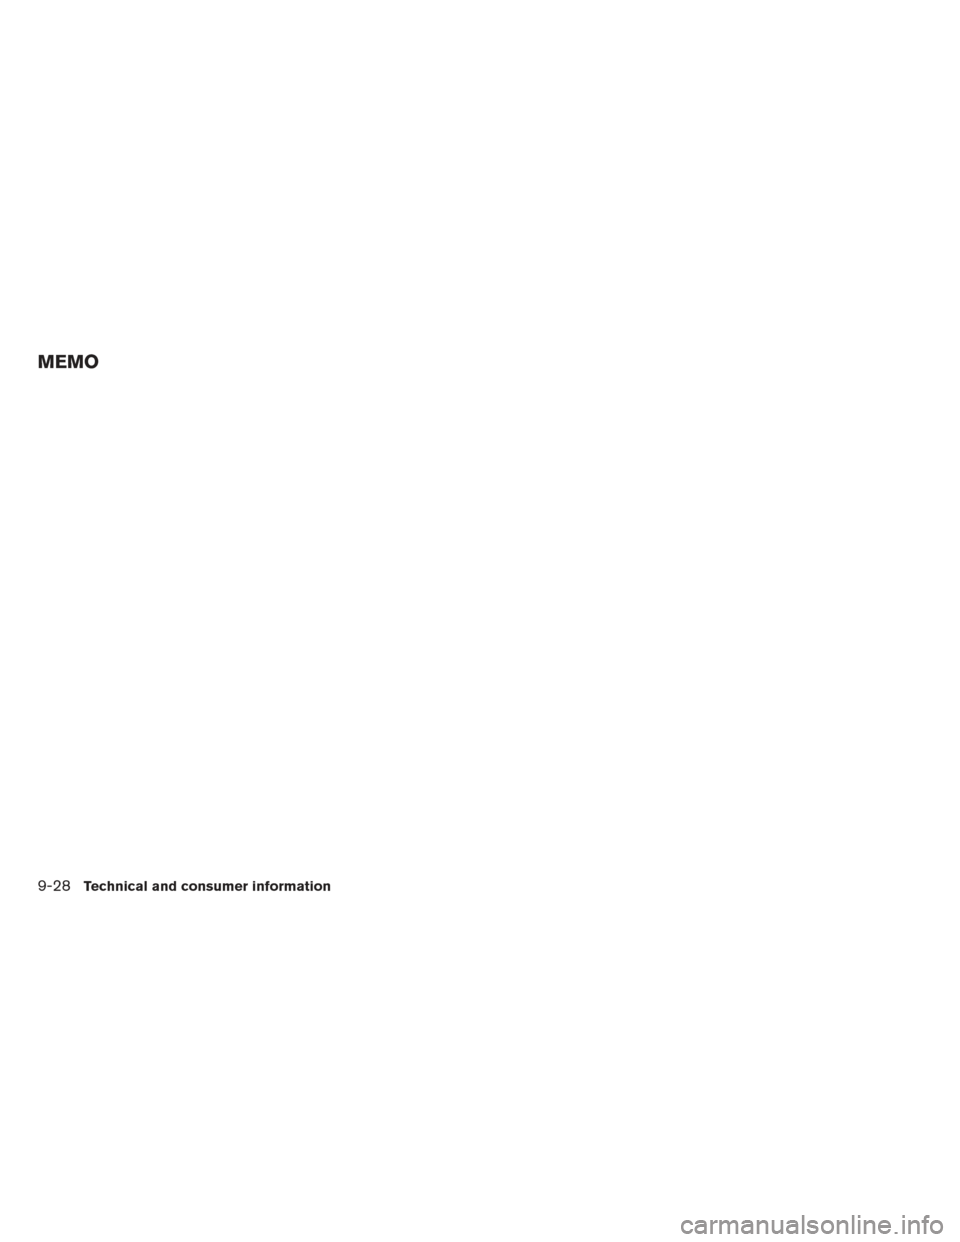 NISSAN MAXIMA 2013 A35 / 7.G Owners Manual MEMO 9-28Technical and consumer information